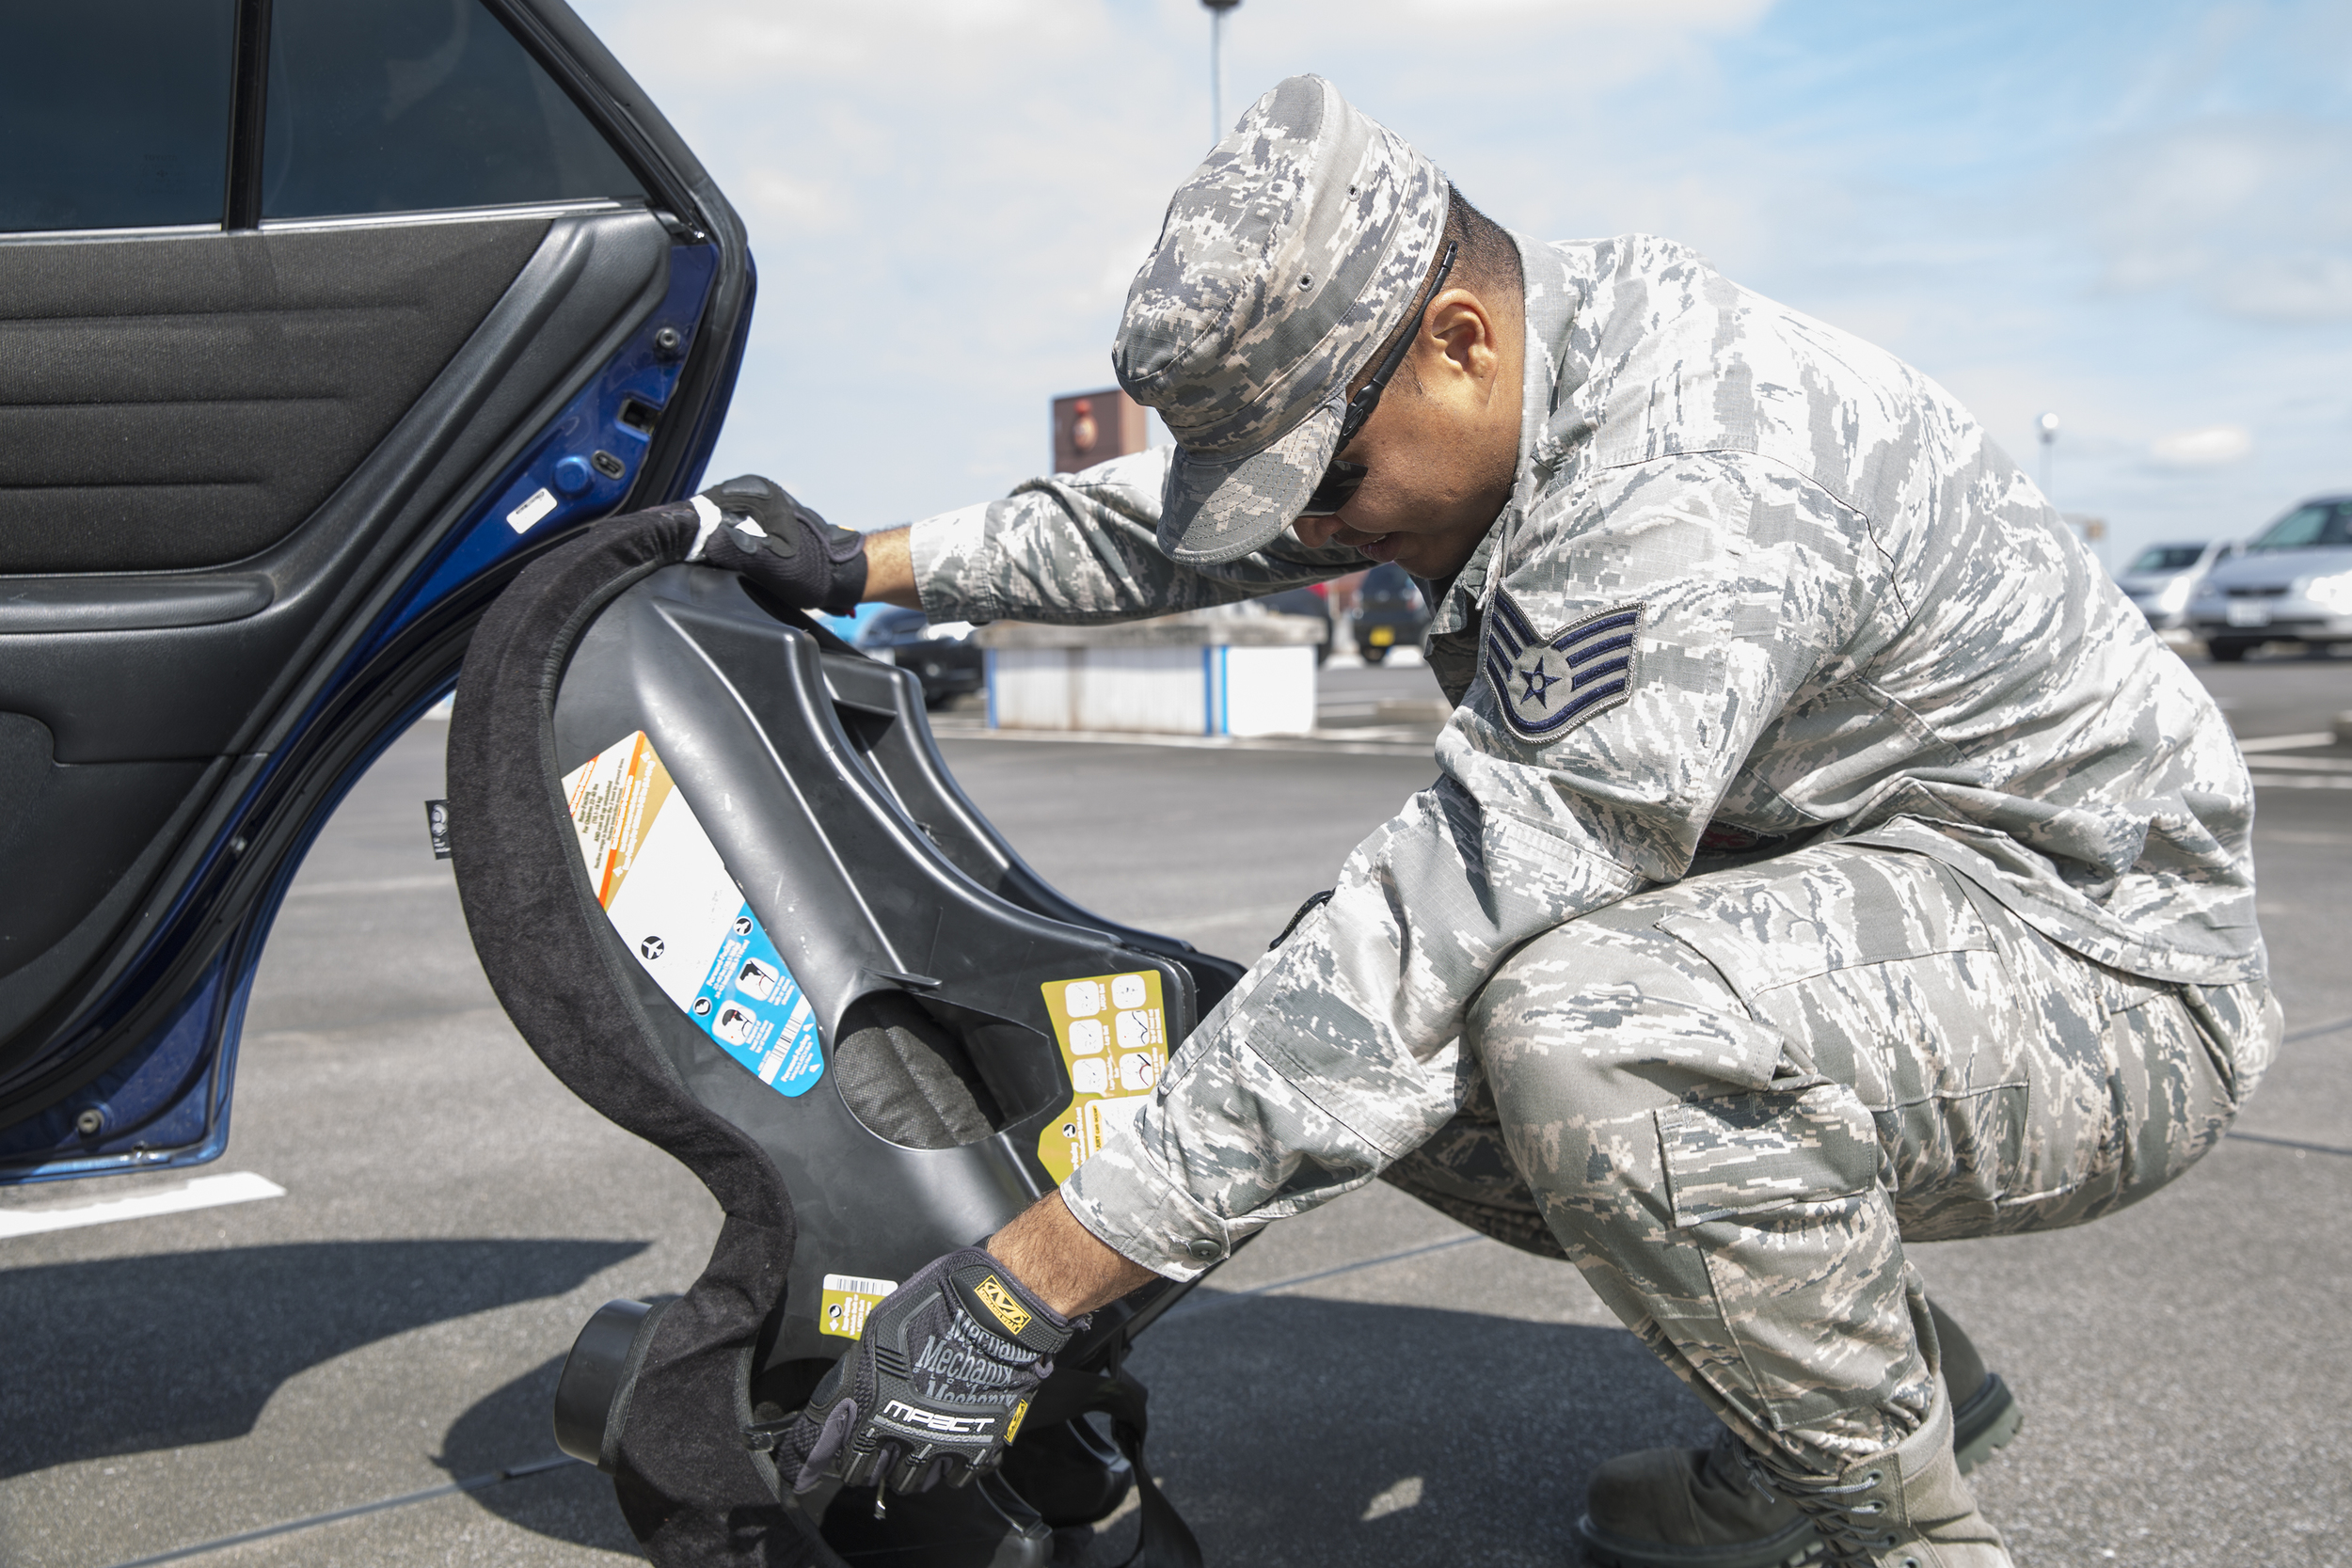 Staff Sgt. Trevor Alexis, 374th Civil Engineer Squadron fire department NCO in charge of training, helps install a child safety seat for a driver at Yokota Community Center, March 4, 2015. Alexis is a certified child passenger safety technician. (U.S. Air Force photo by Osakabe Yasuo/Released)